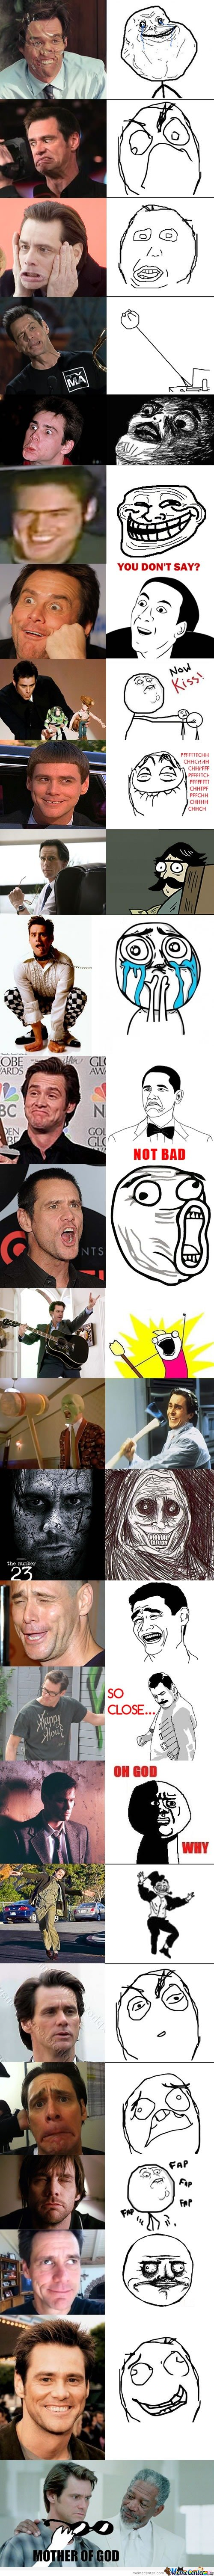 Jim Carrey & Rage Faces